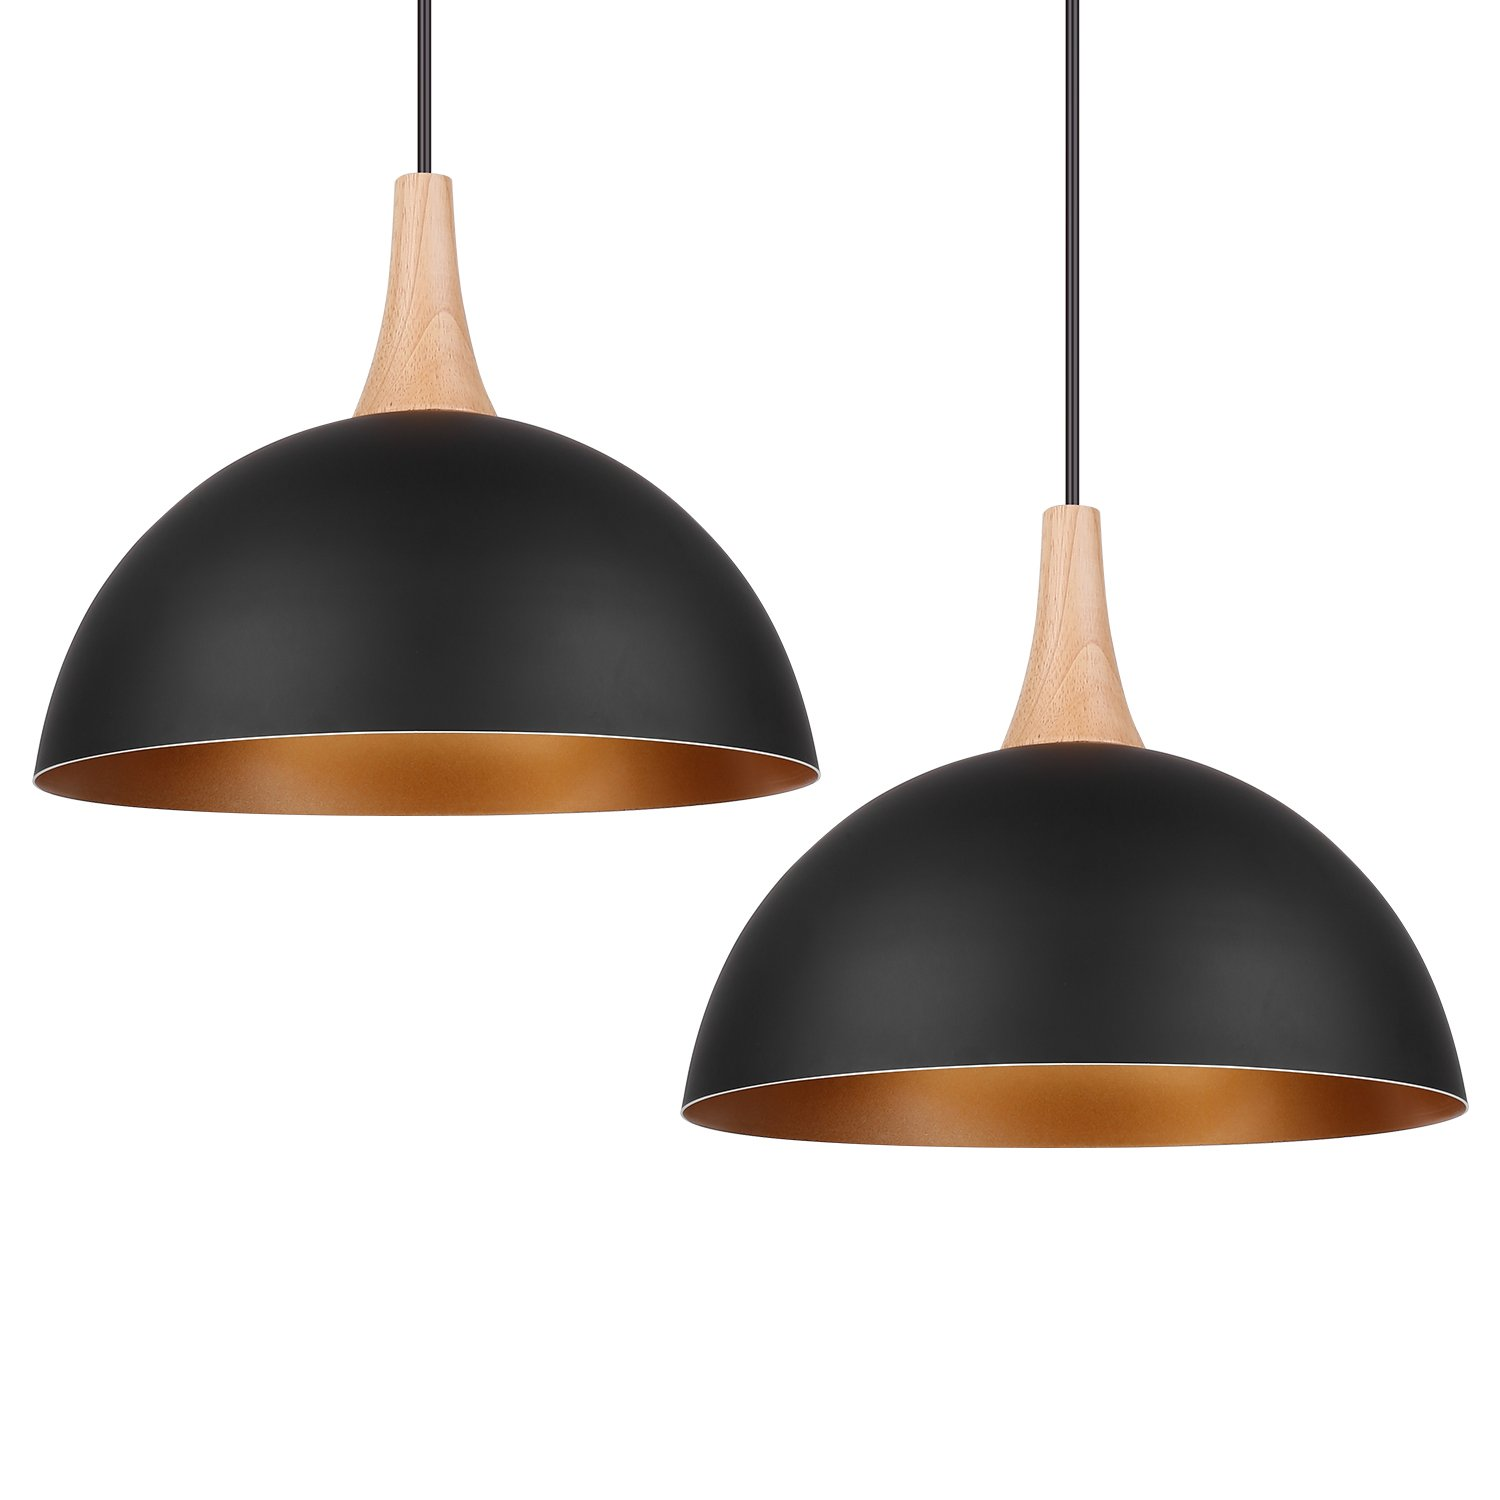 DECKEY Pendant Light Fixtures Ceiling Hanging Pendant Lights with Classic Vintage Industrial Metal Lampshade for Dining Room/Living Room/Restaurant - 2 Pack